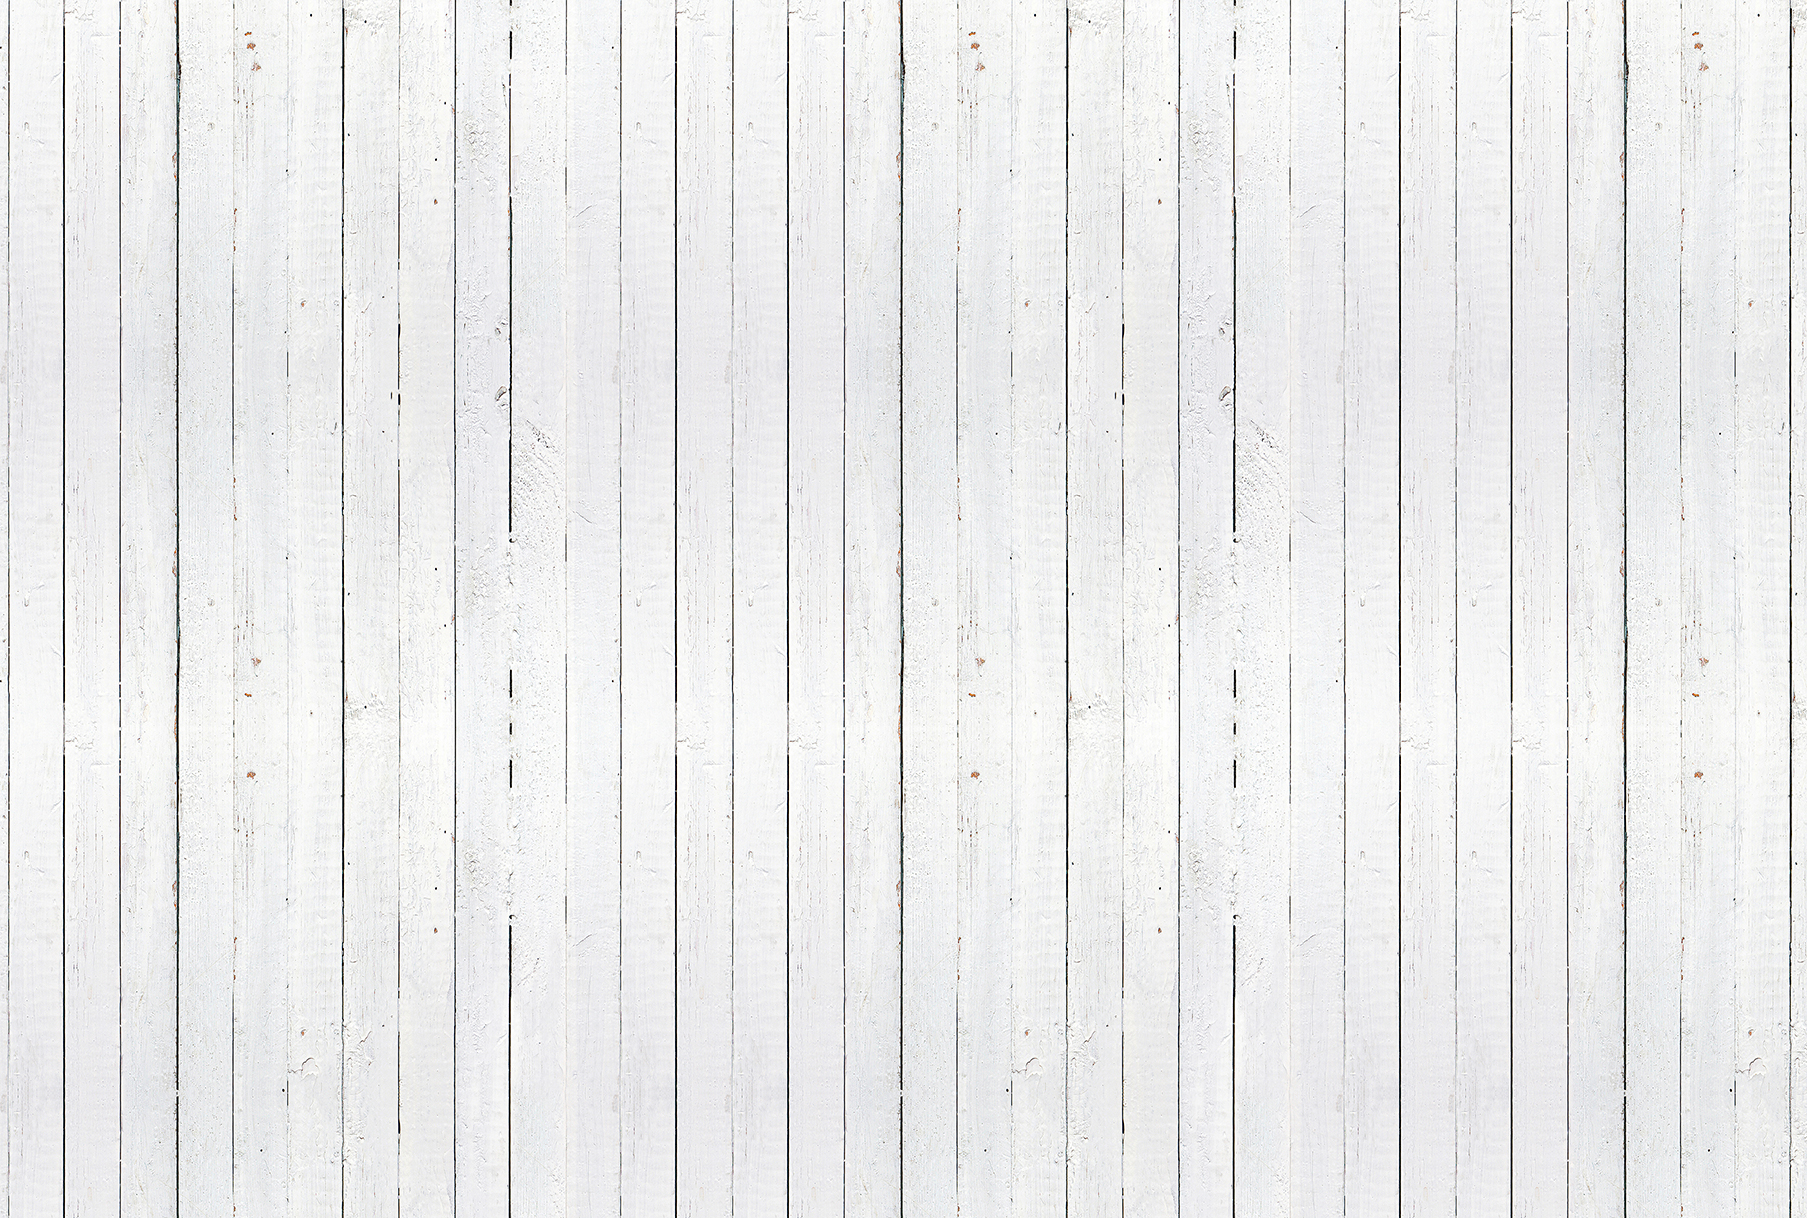 White Wood Background   PowerPoint Backgrounds for PowerPoint 1807x1218